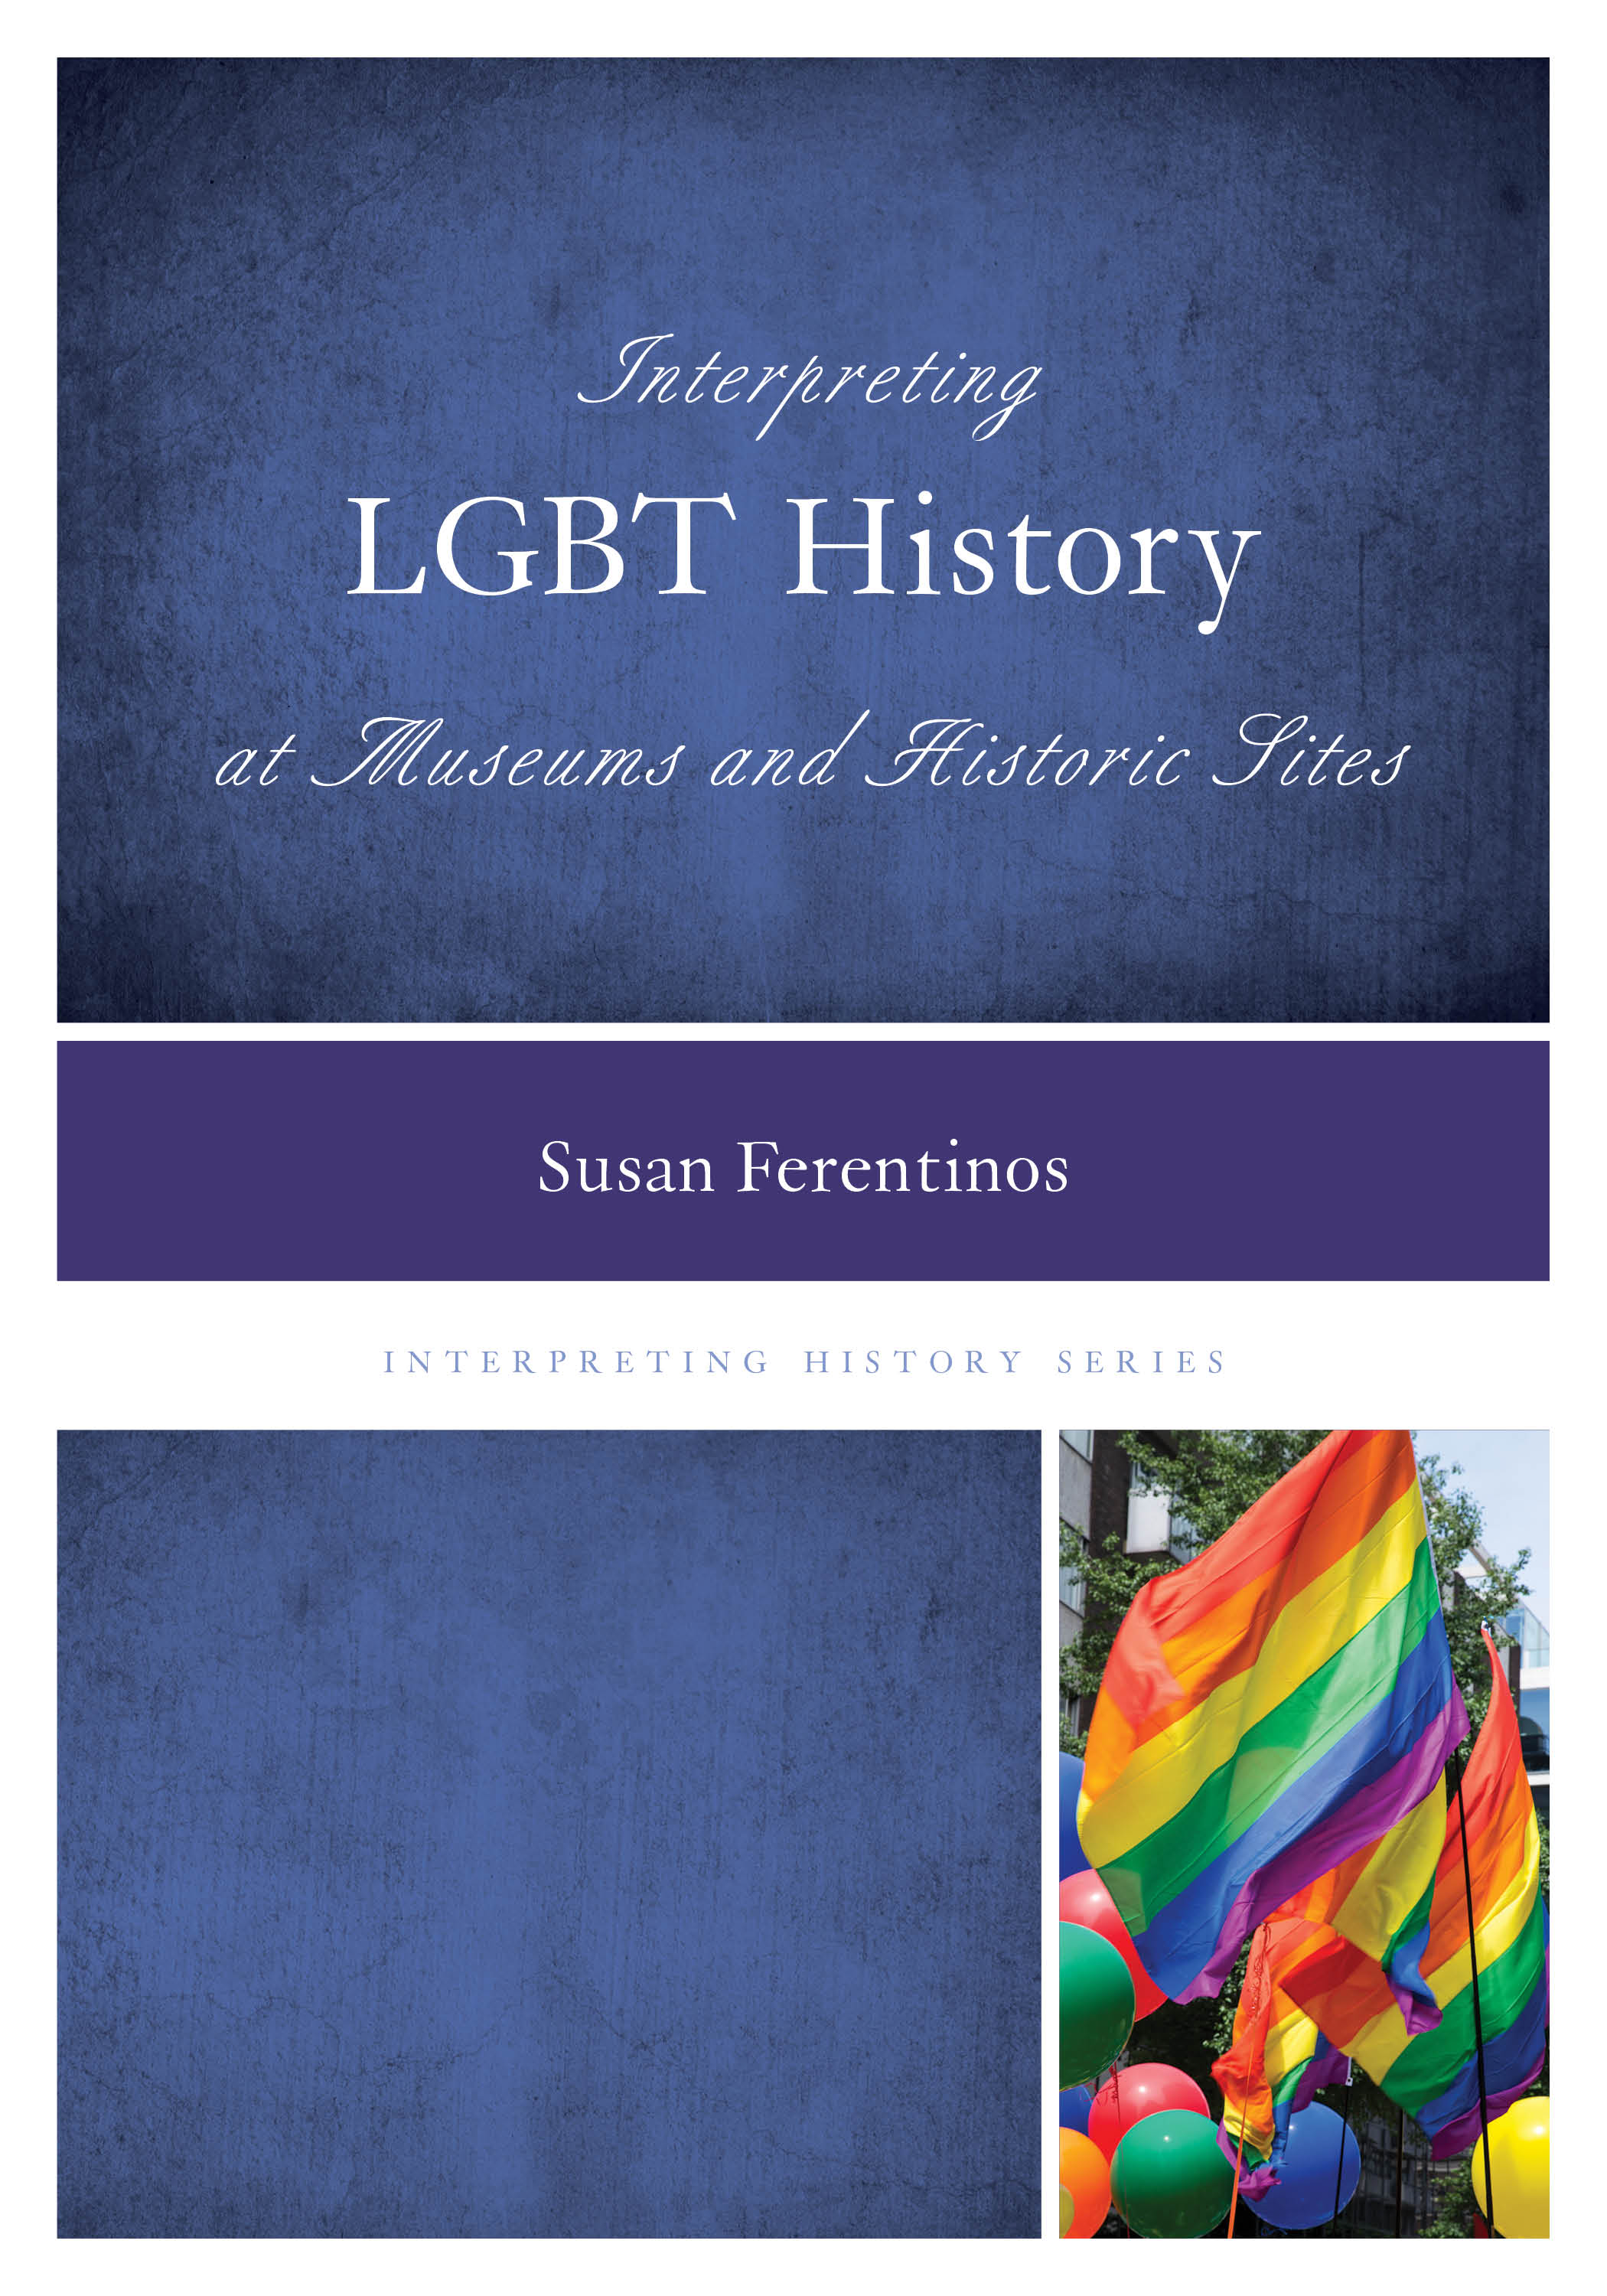 How do I stop from being upset while writing my essay on LGBT history?